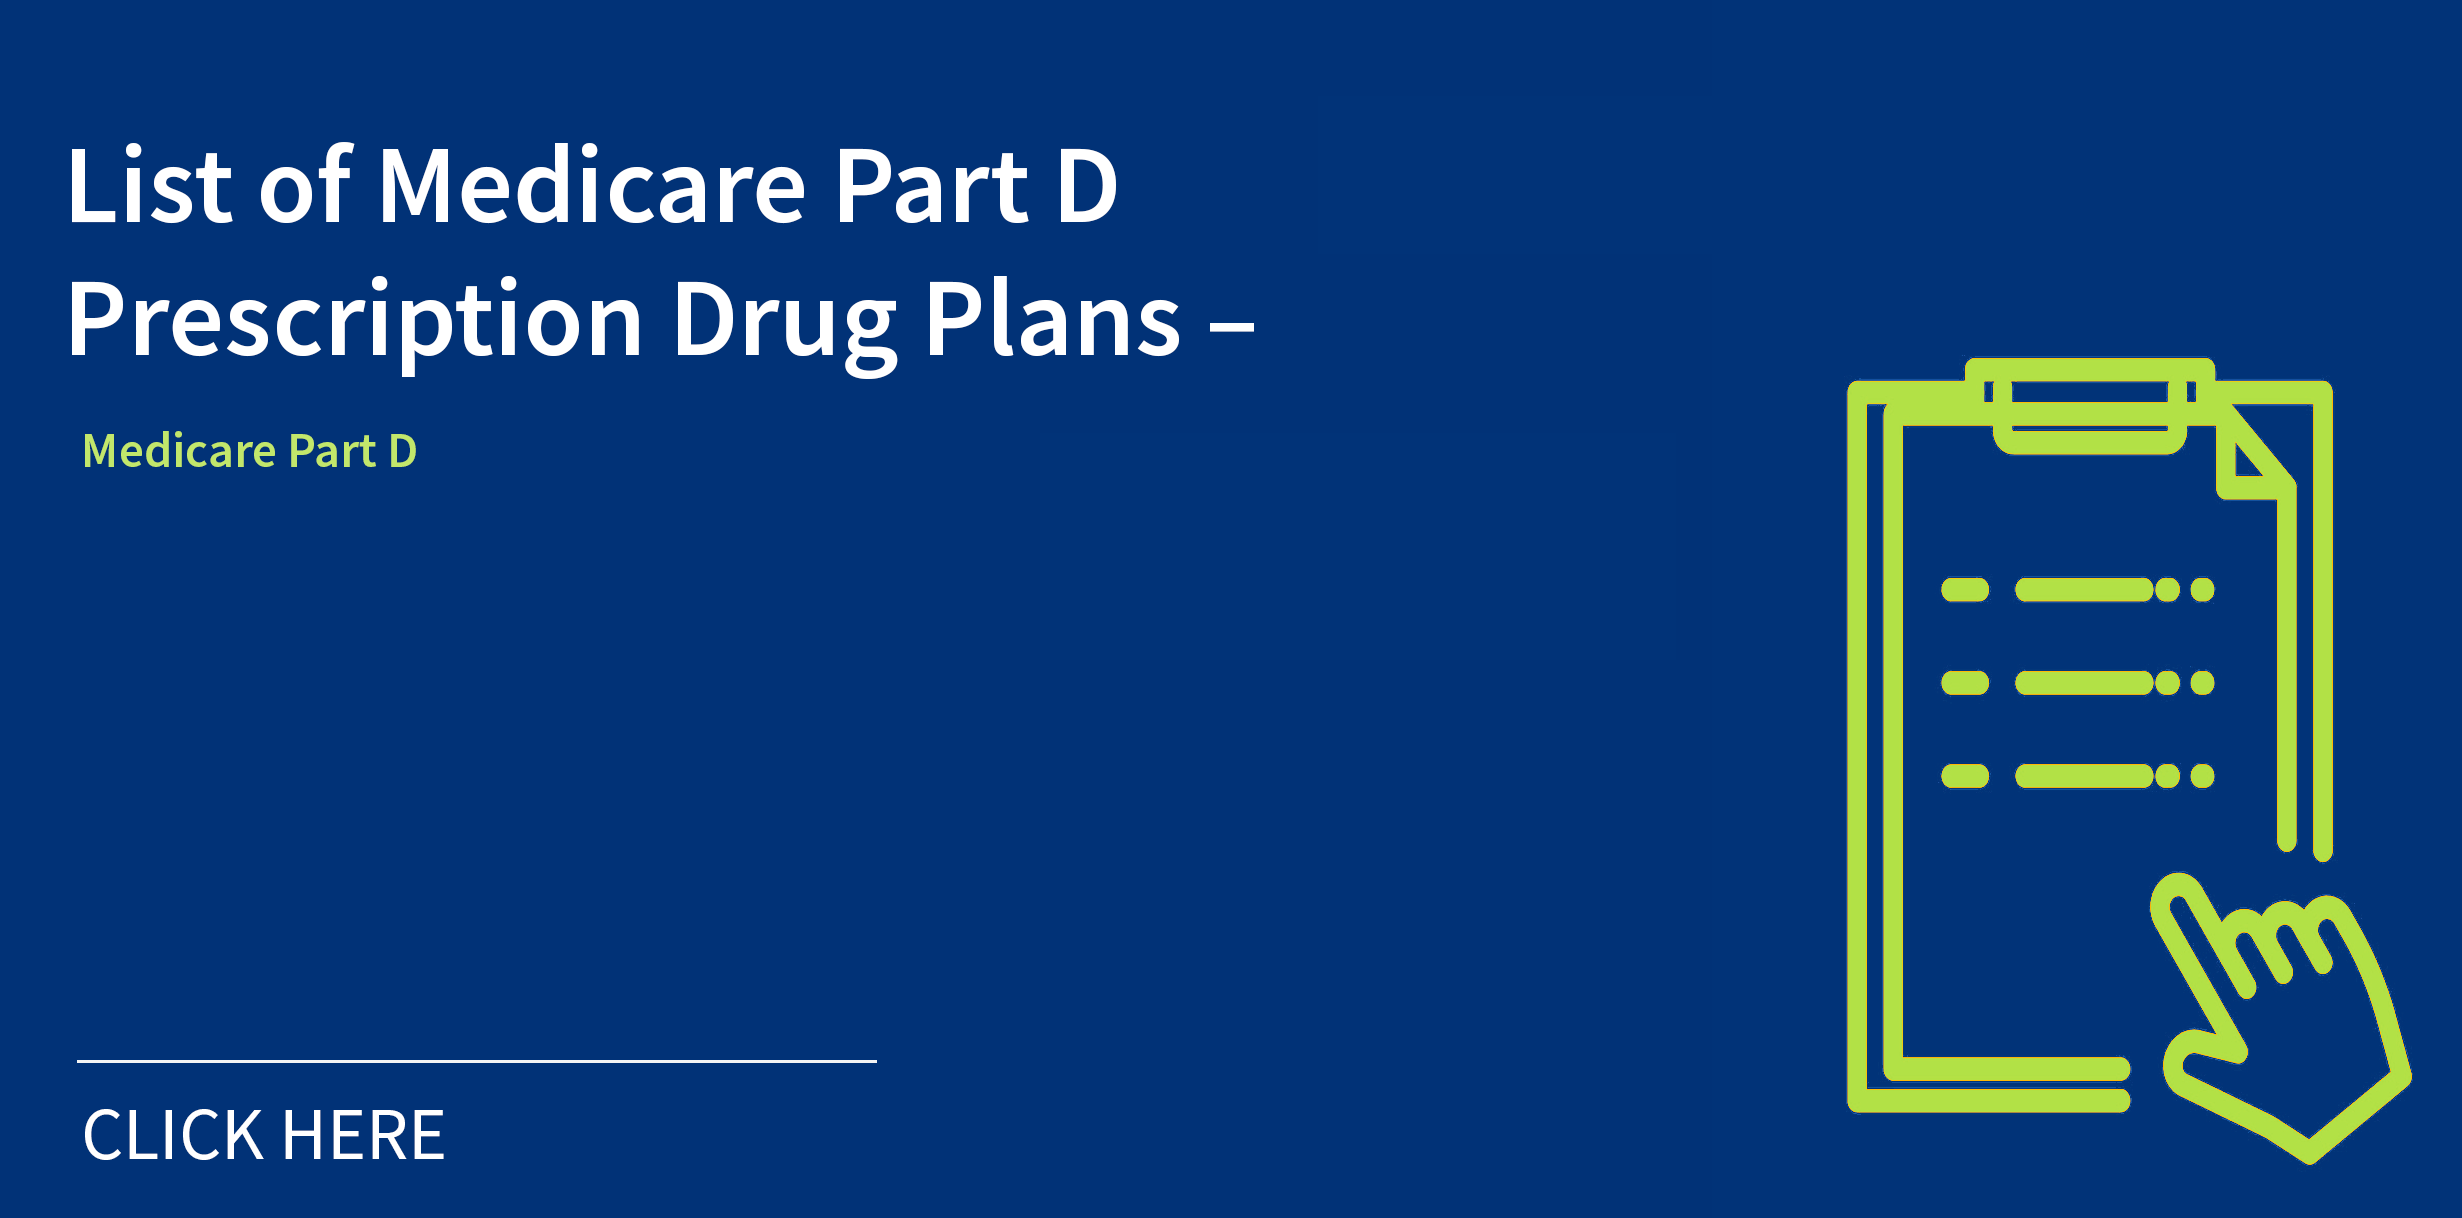 Medicare Part D Plan Graphic